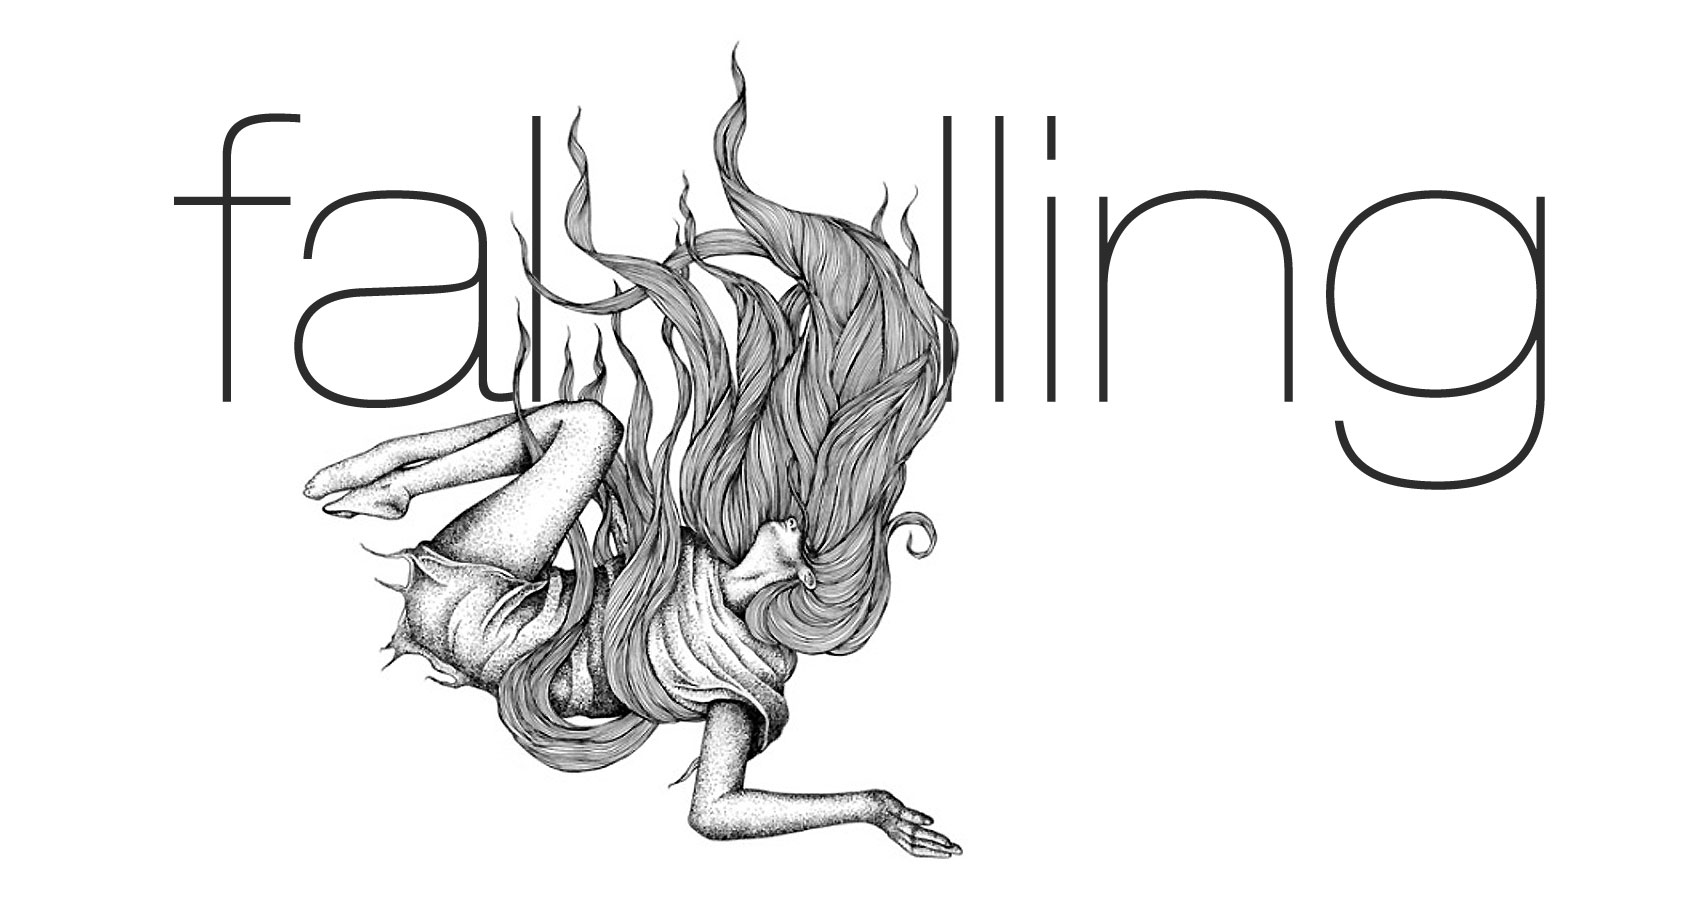 Falling written by Anushka Maheshwary at Spillword.com